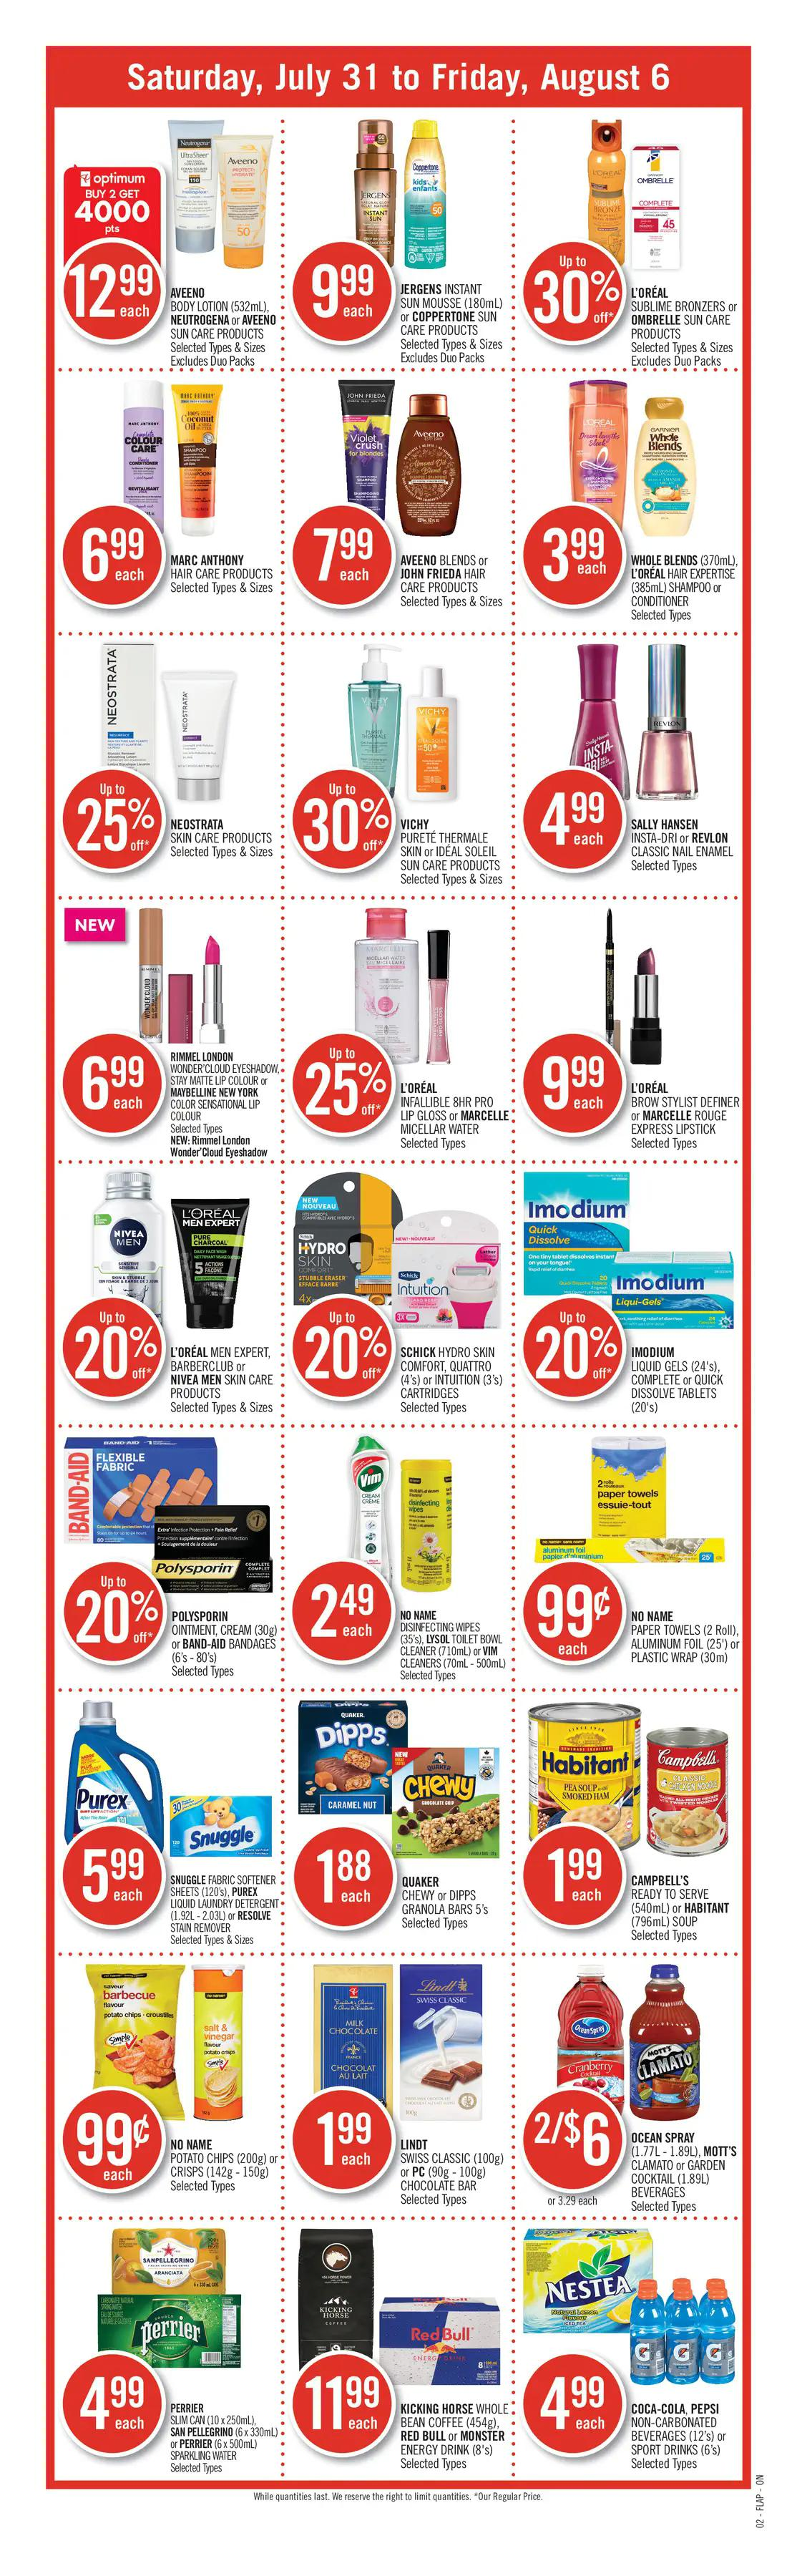 Shoppers Drug Mart - Weekly Flyer Specials - Page 2